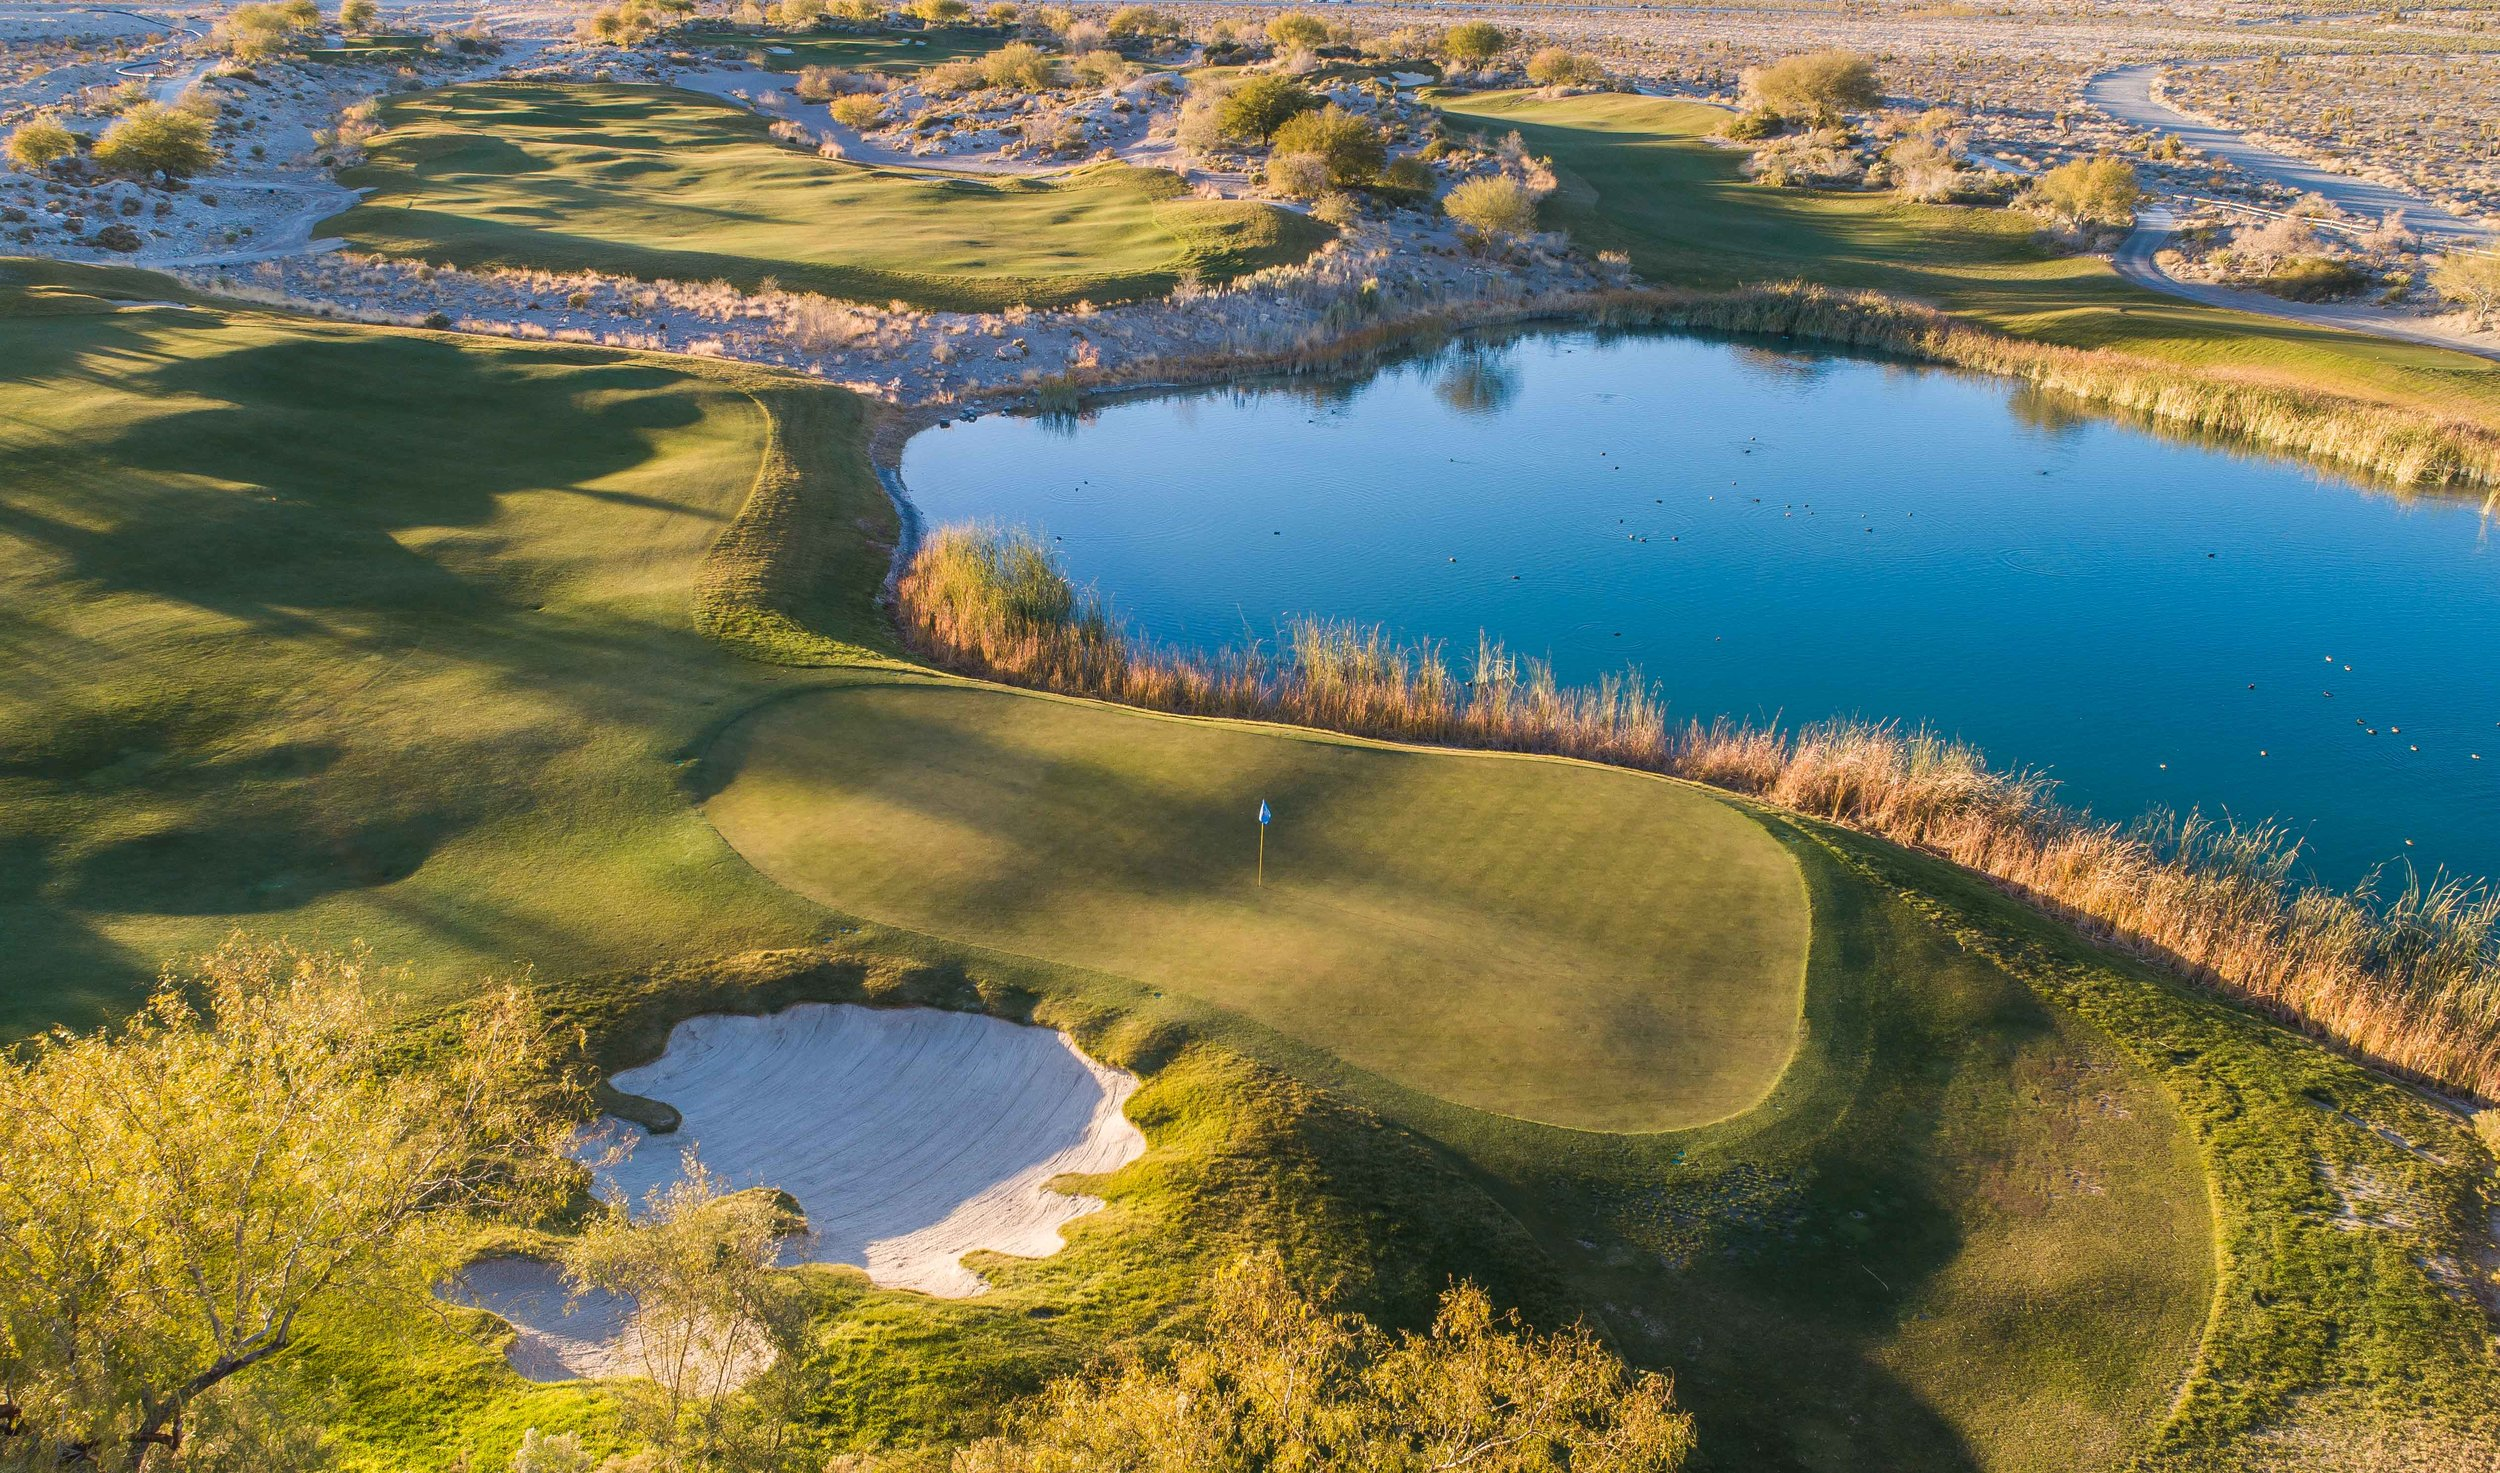 Nicklaus' Coyote Springs